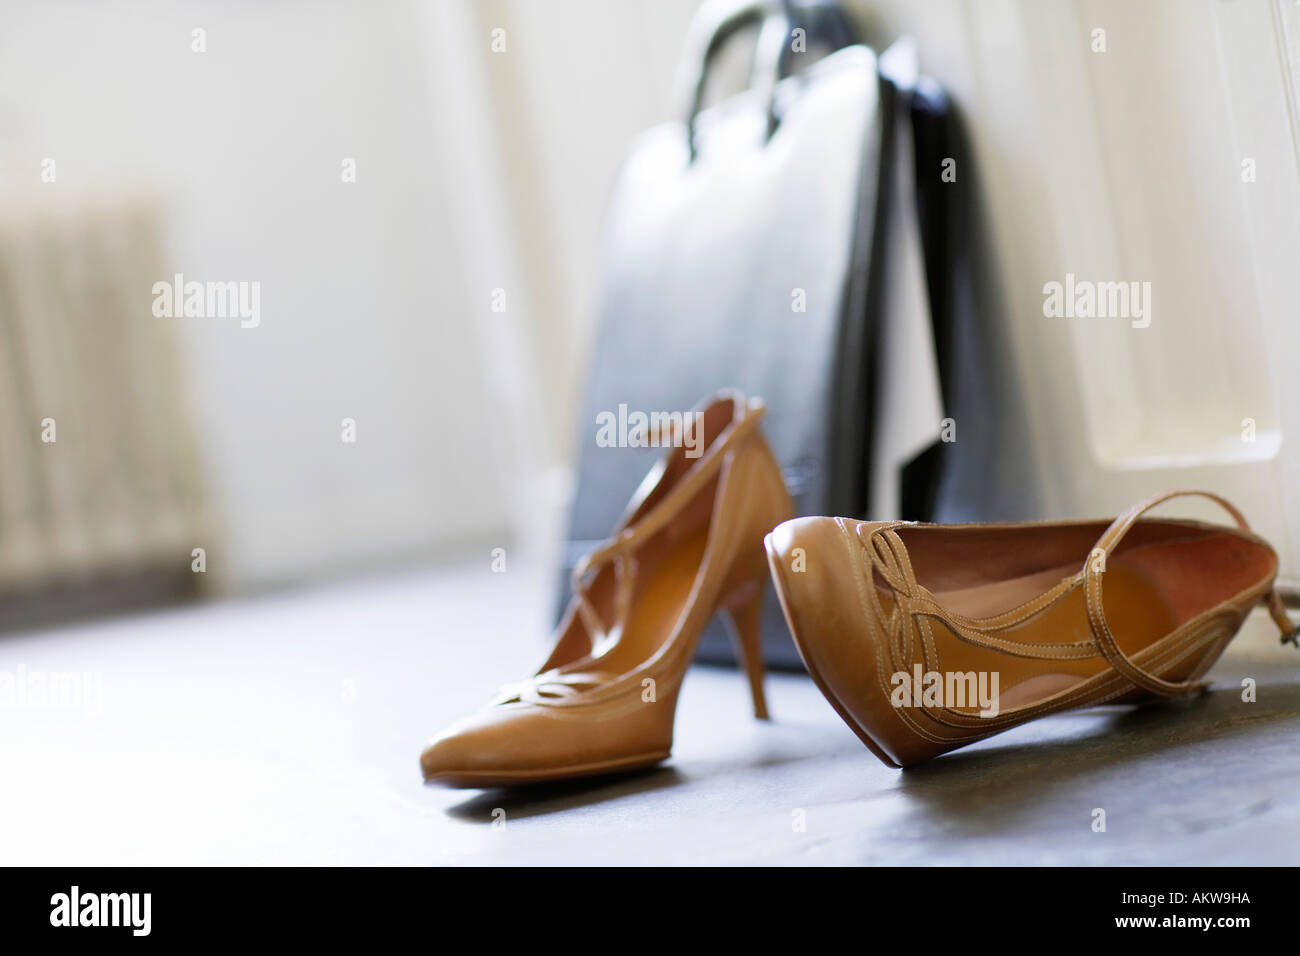 High heels and briefcase on domestic hallway floor, close up - Stock Image